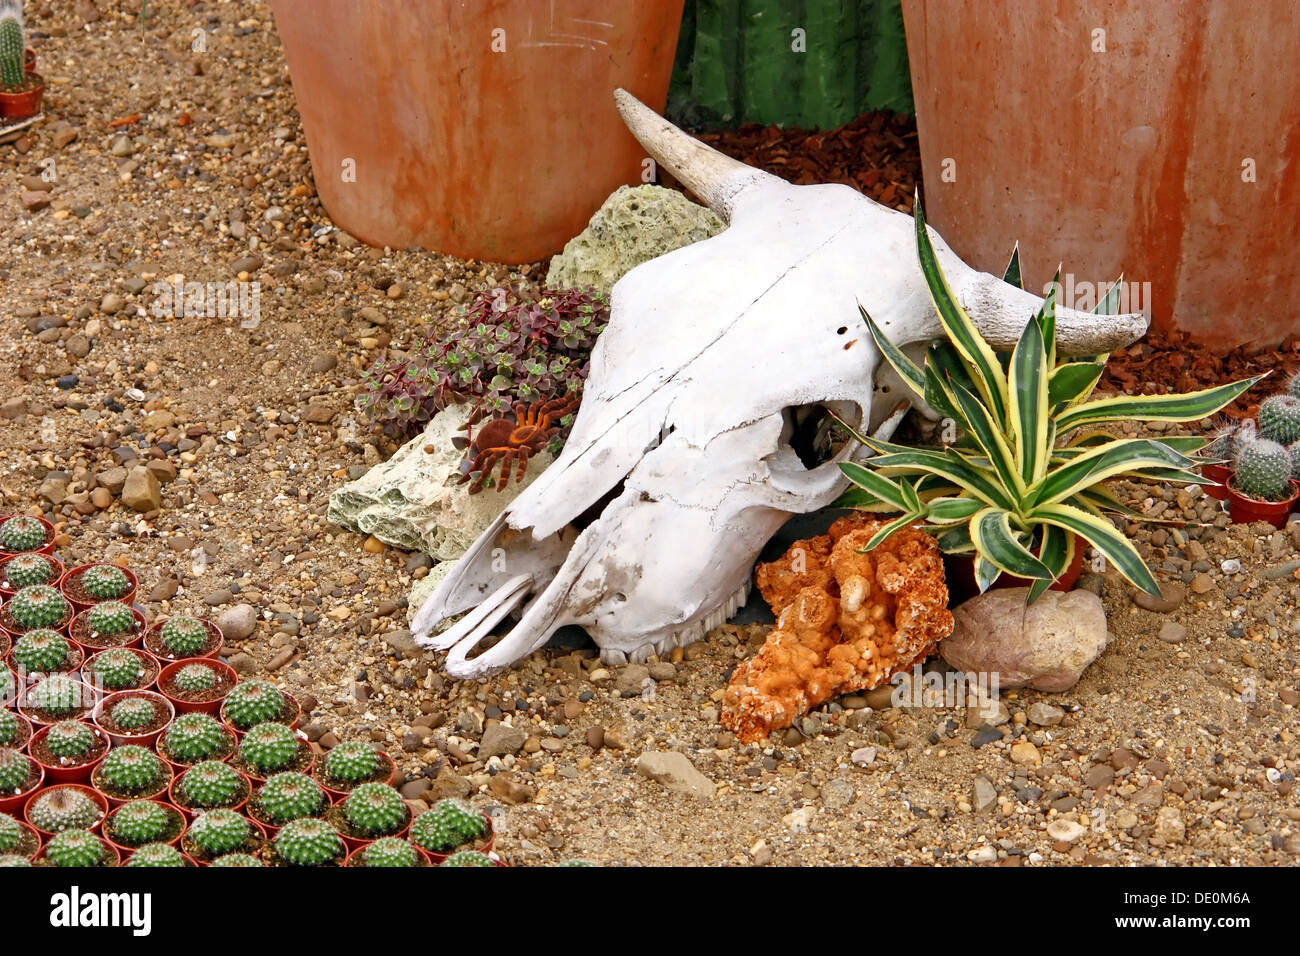 Cow skull as a decorative element in the garden Stock Photo